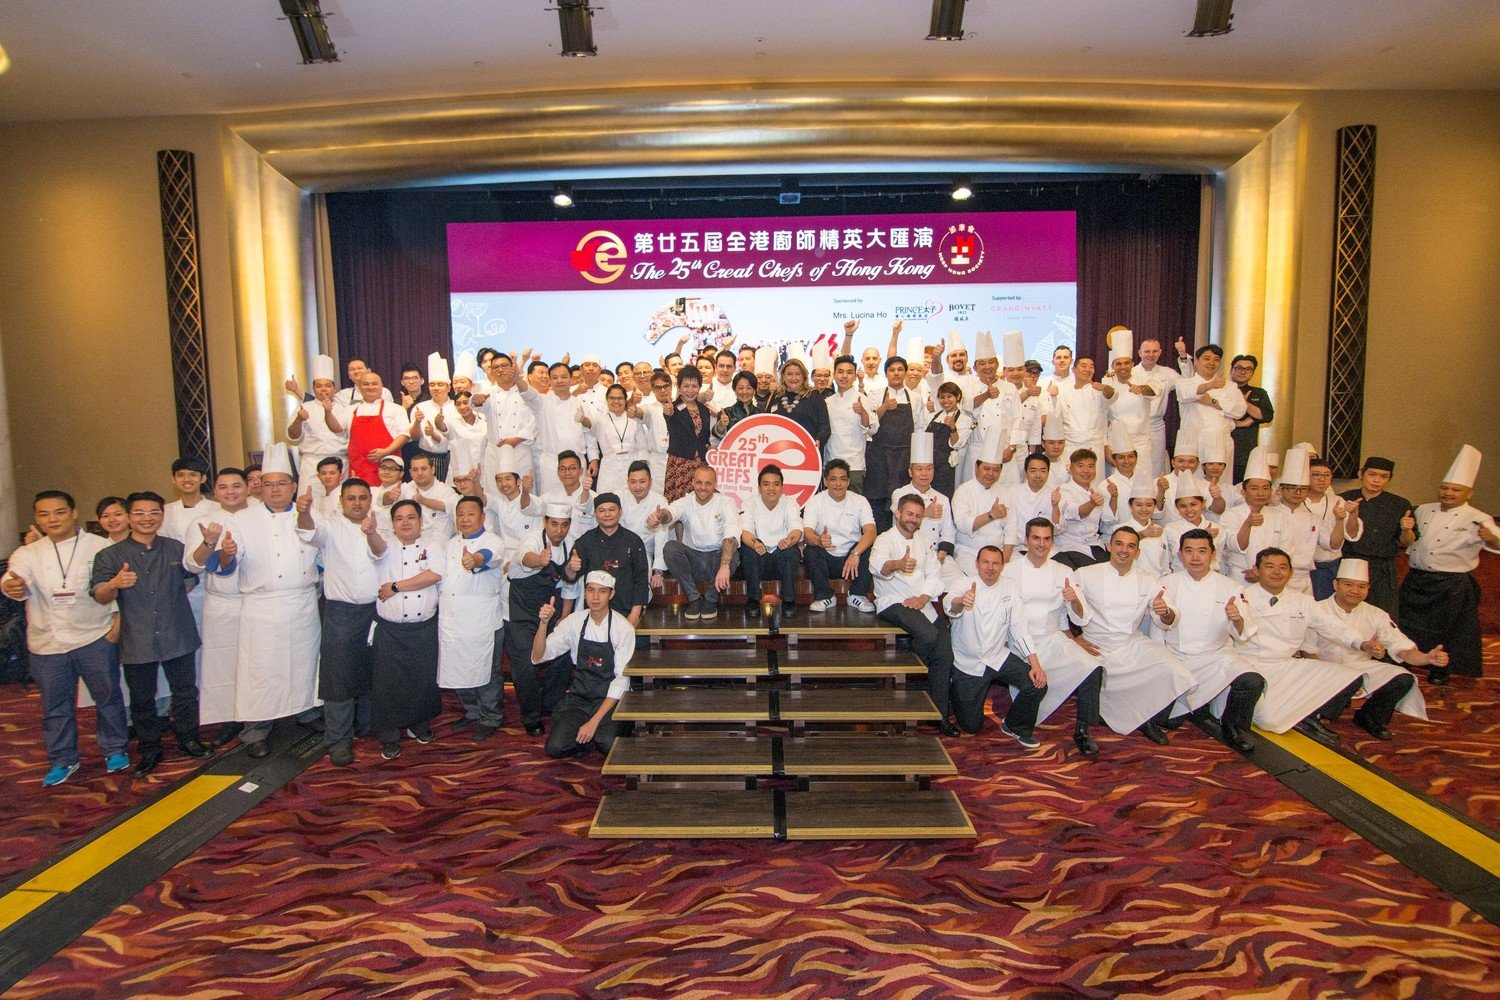 Great Chefs 2017